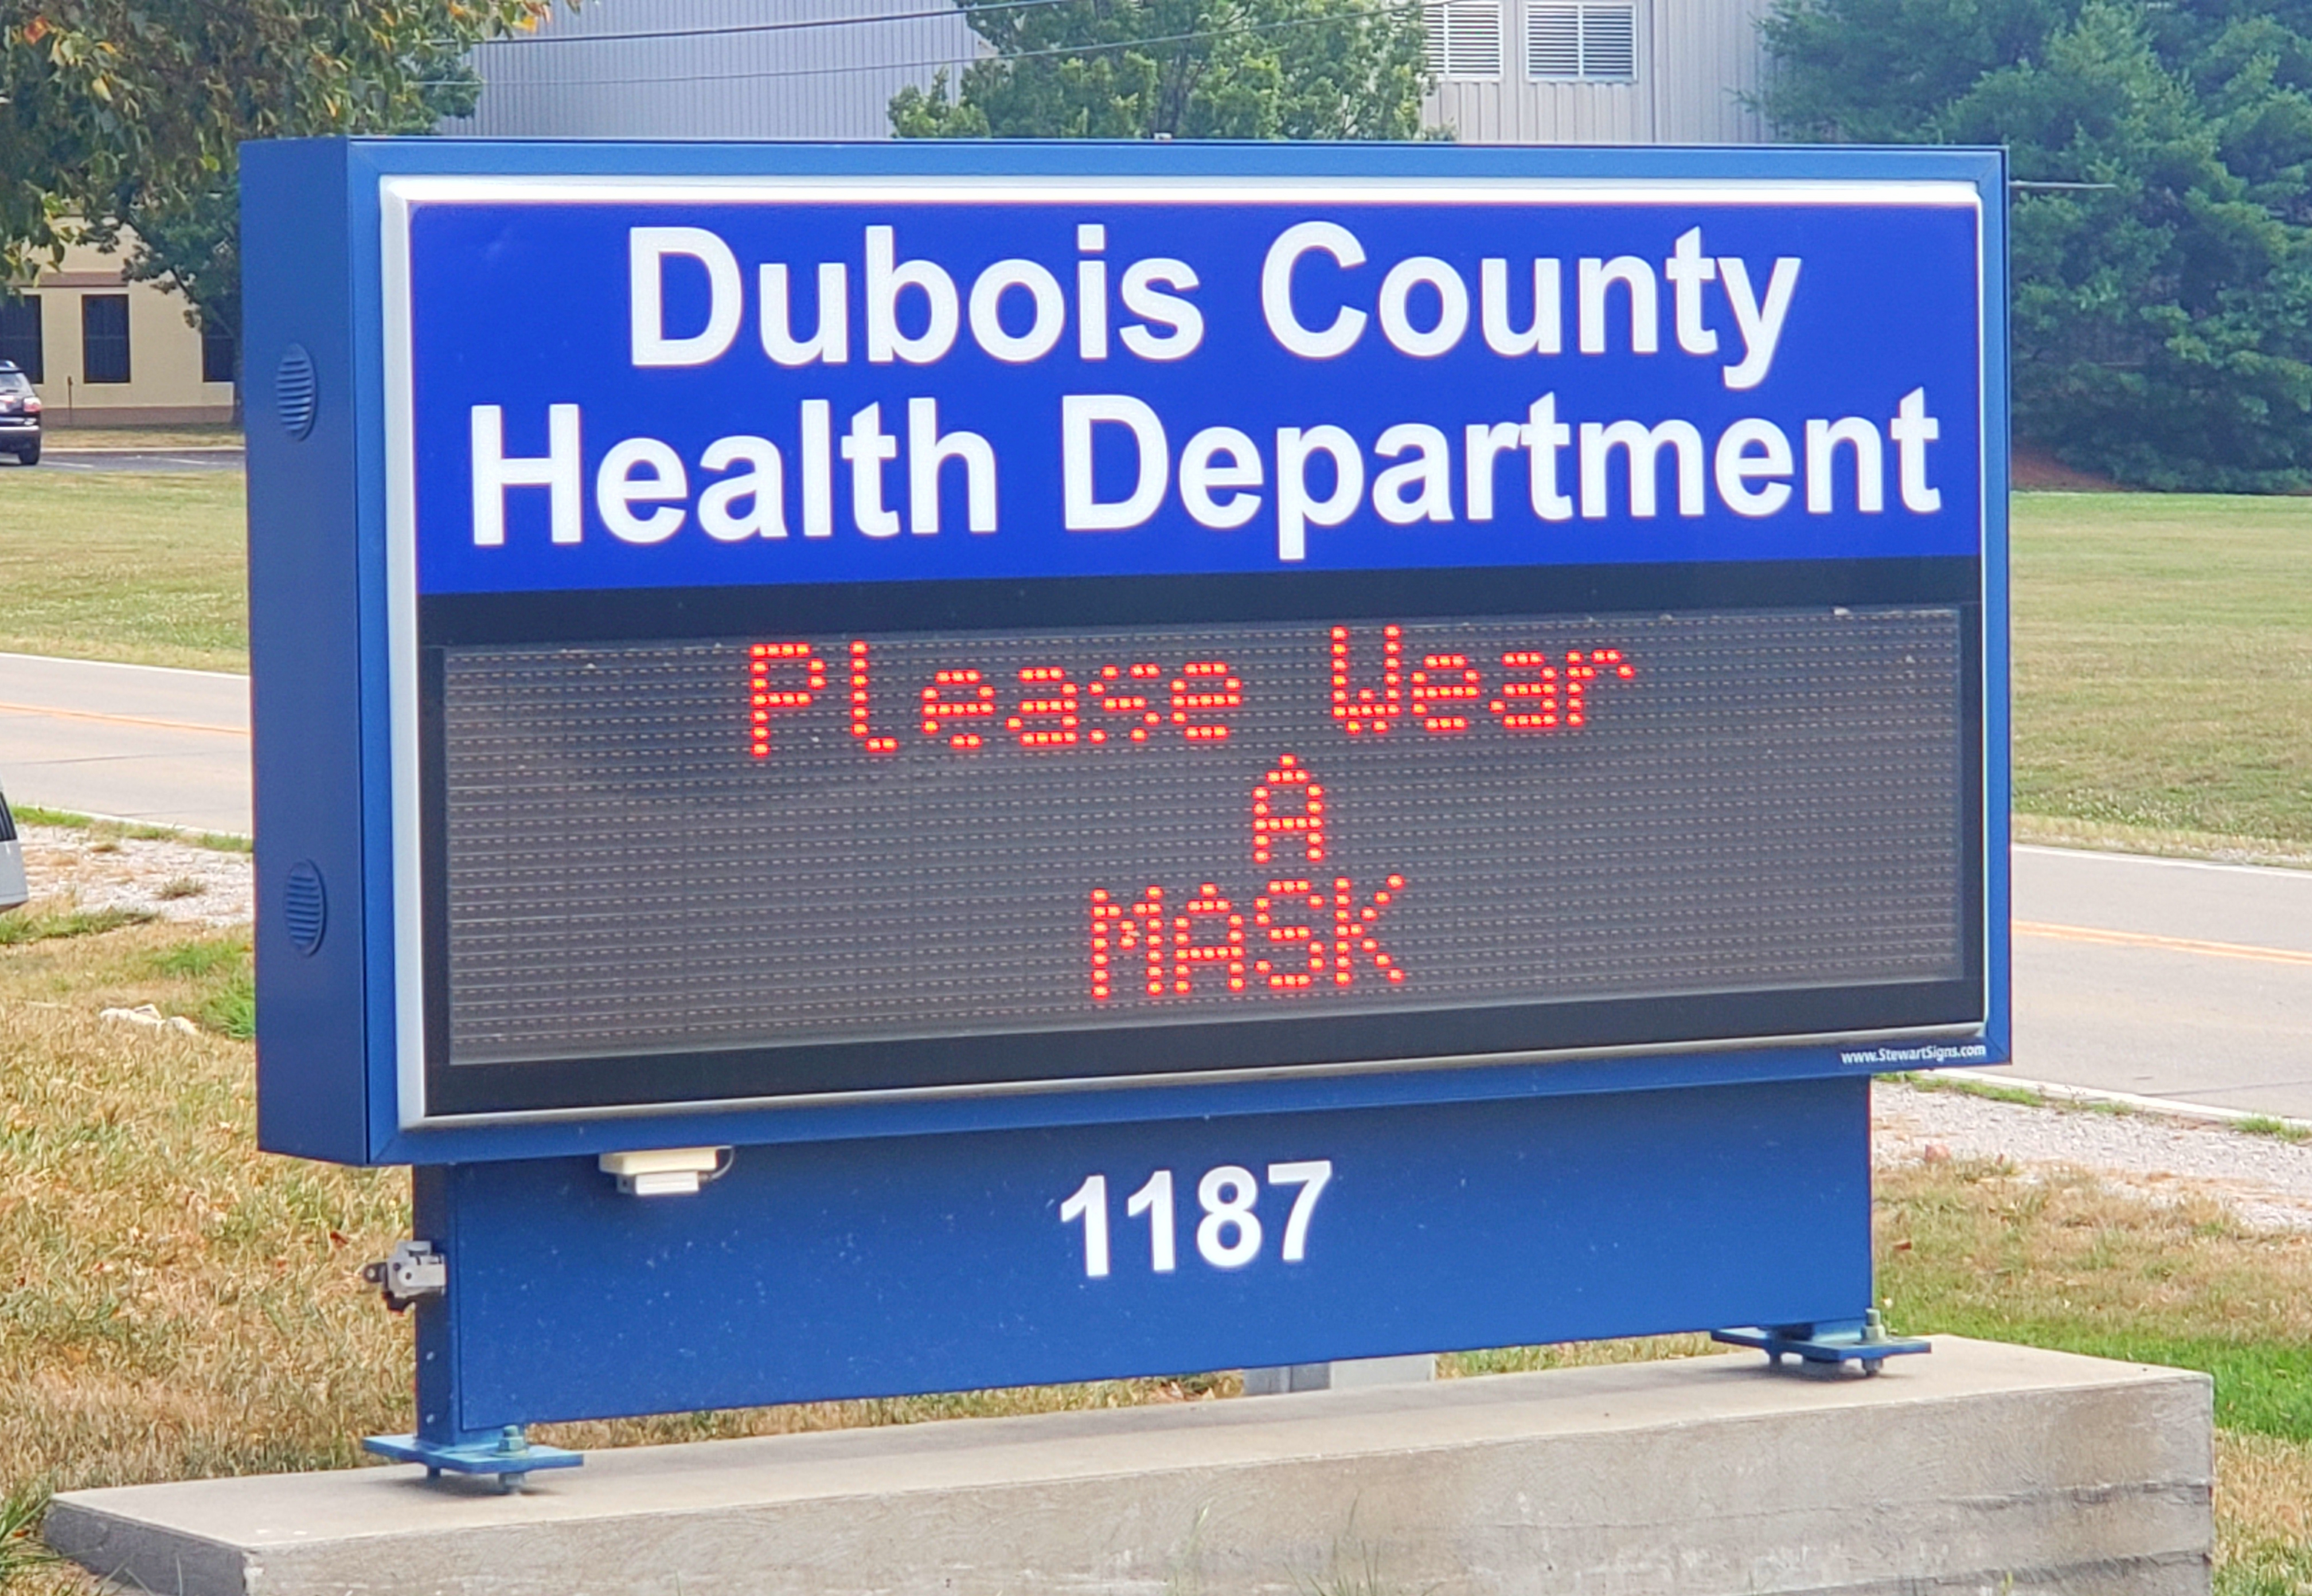 UPDATE:  29 New Cases of COVID-19 Reported as Dubois County Nears 1,000 Total Cases